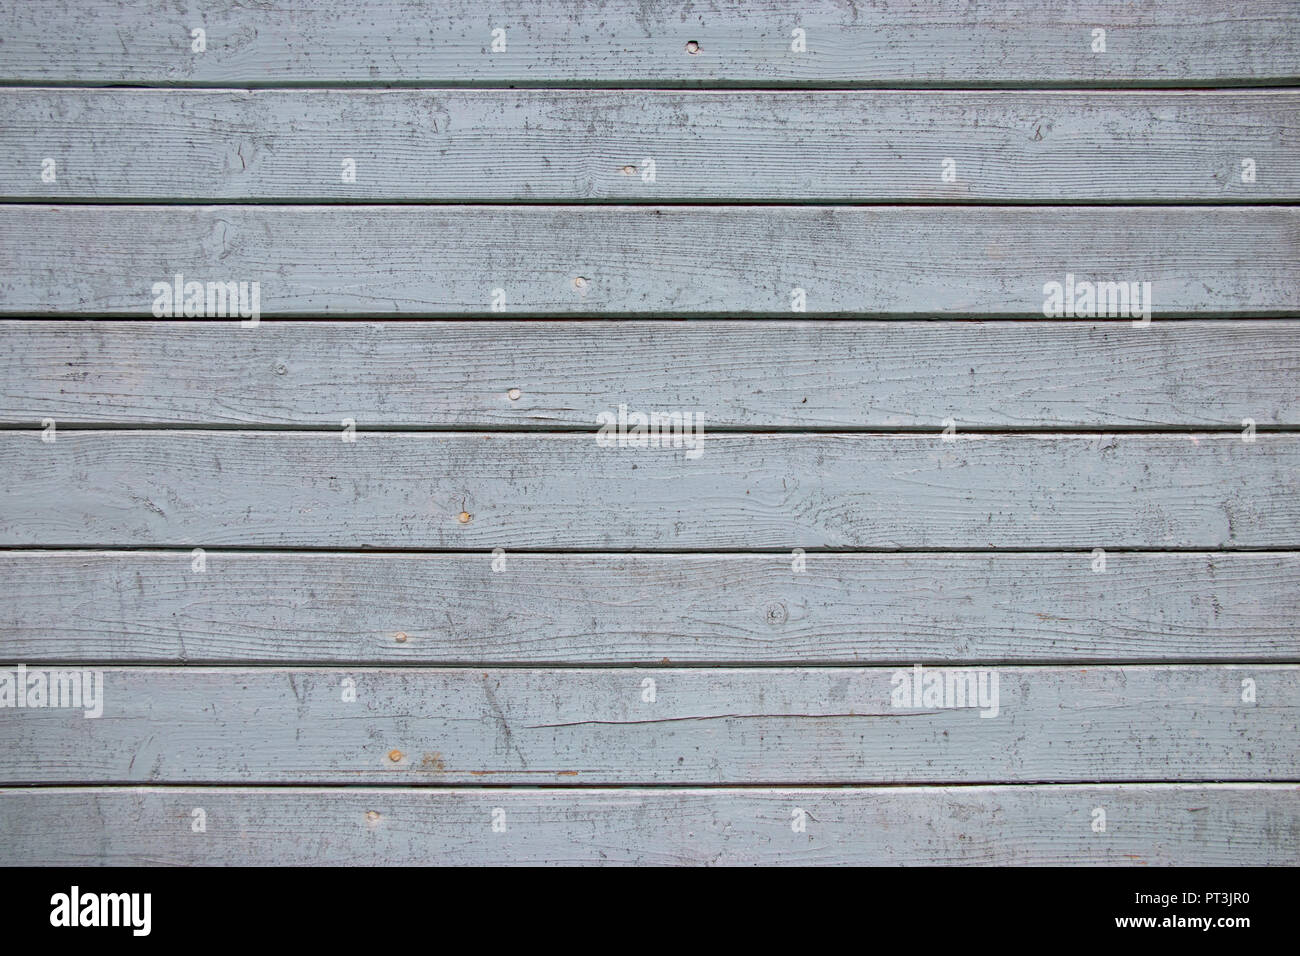 Aged painted gray wooden background abstract horizontal lines - Stock Image